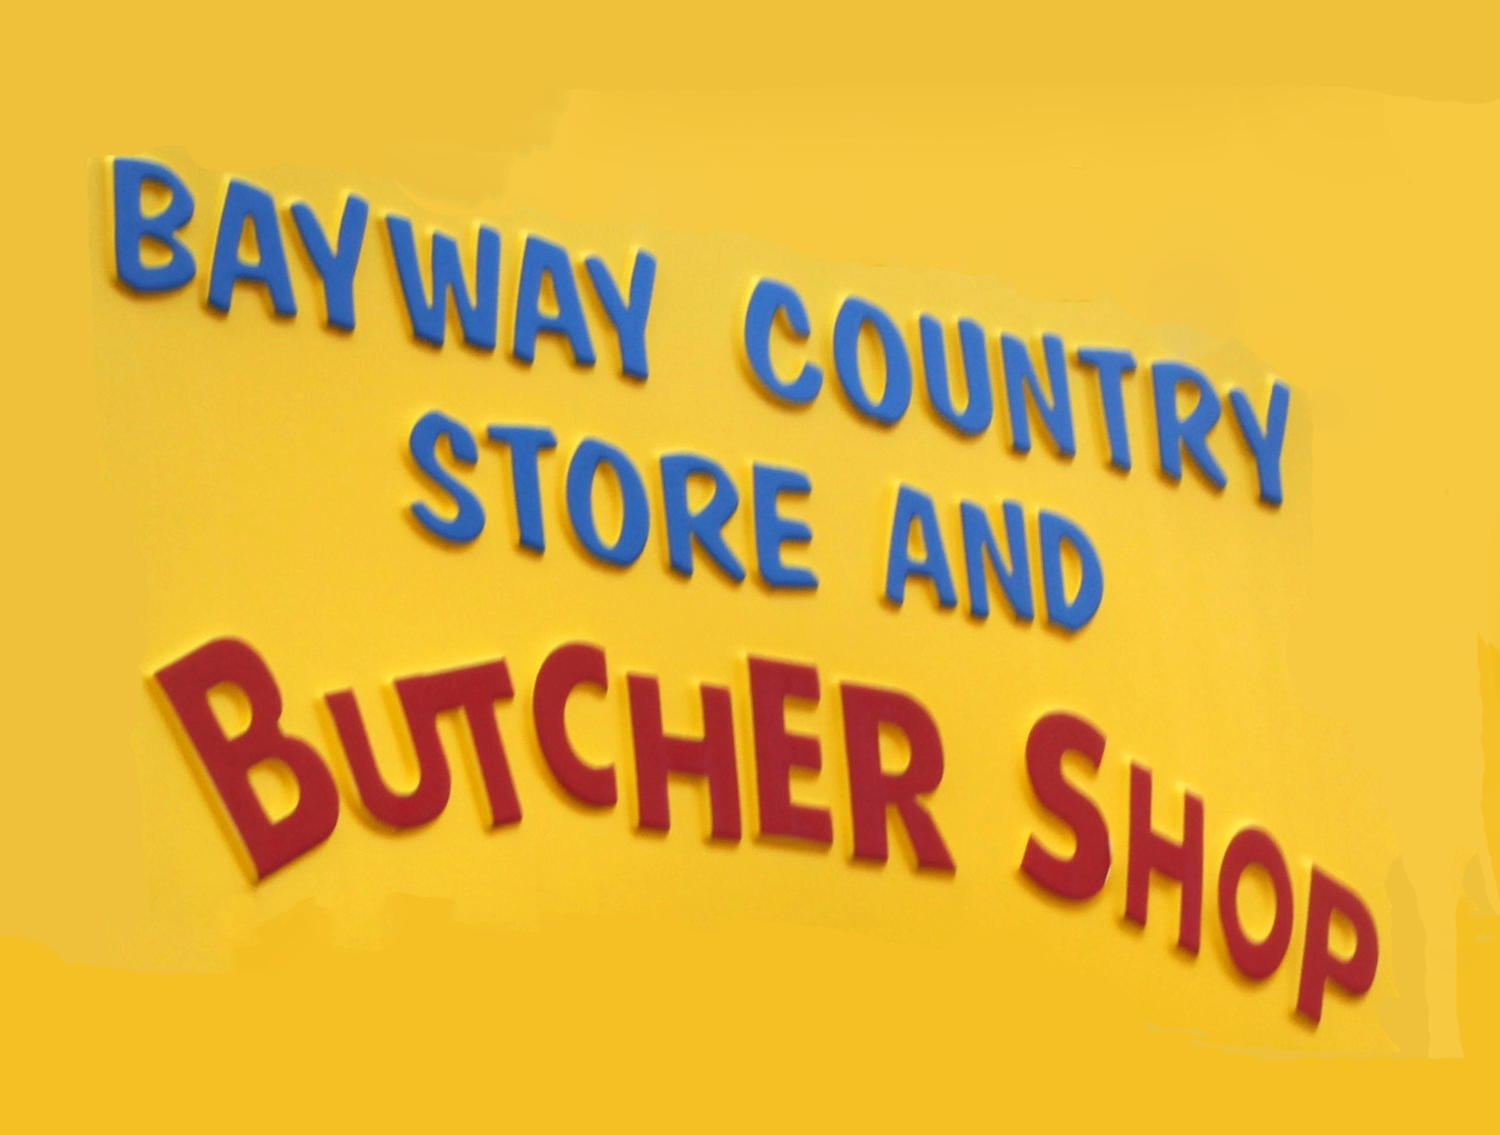 Bayway Country Store